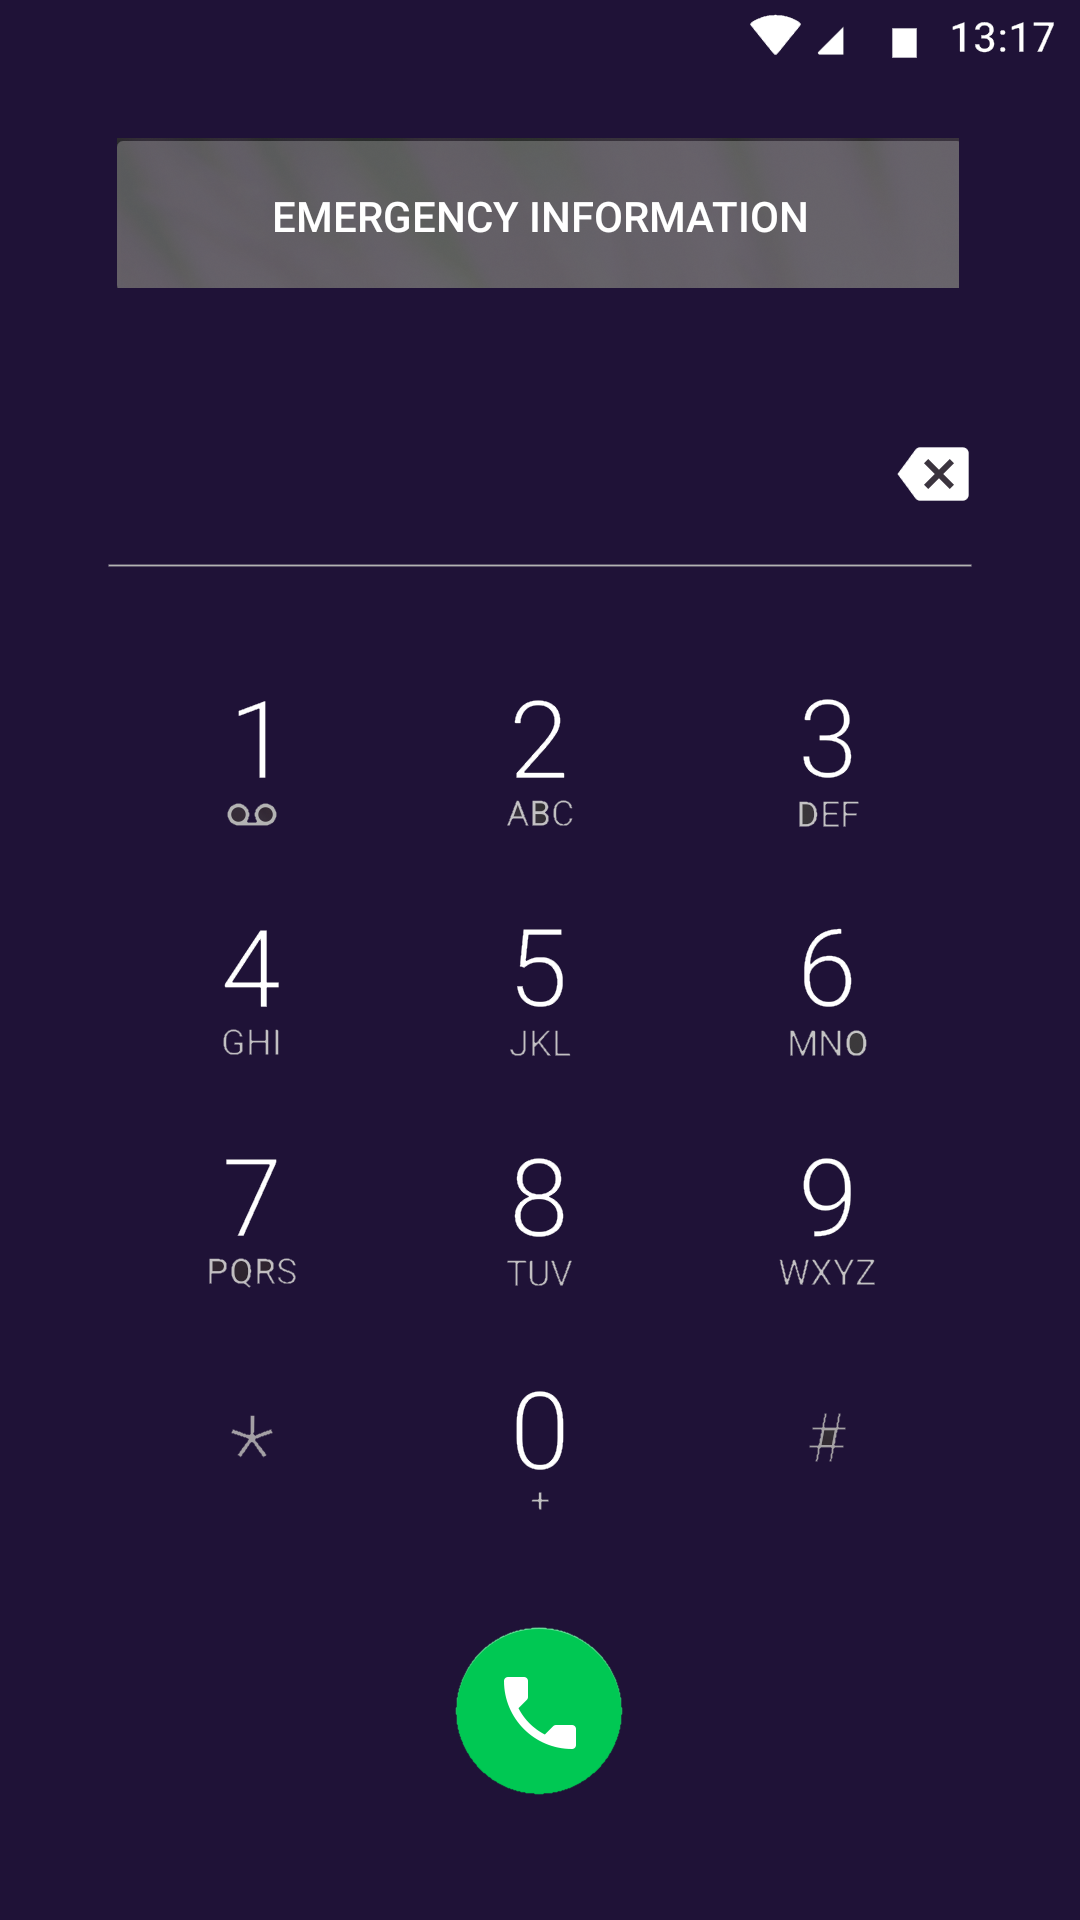 Android emergency dialer screenshot.